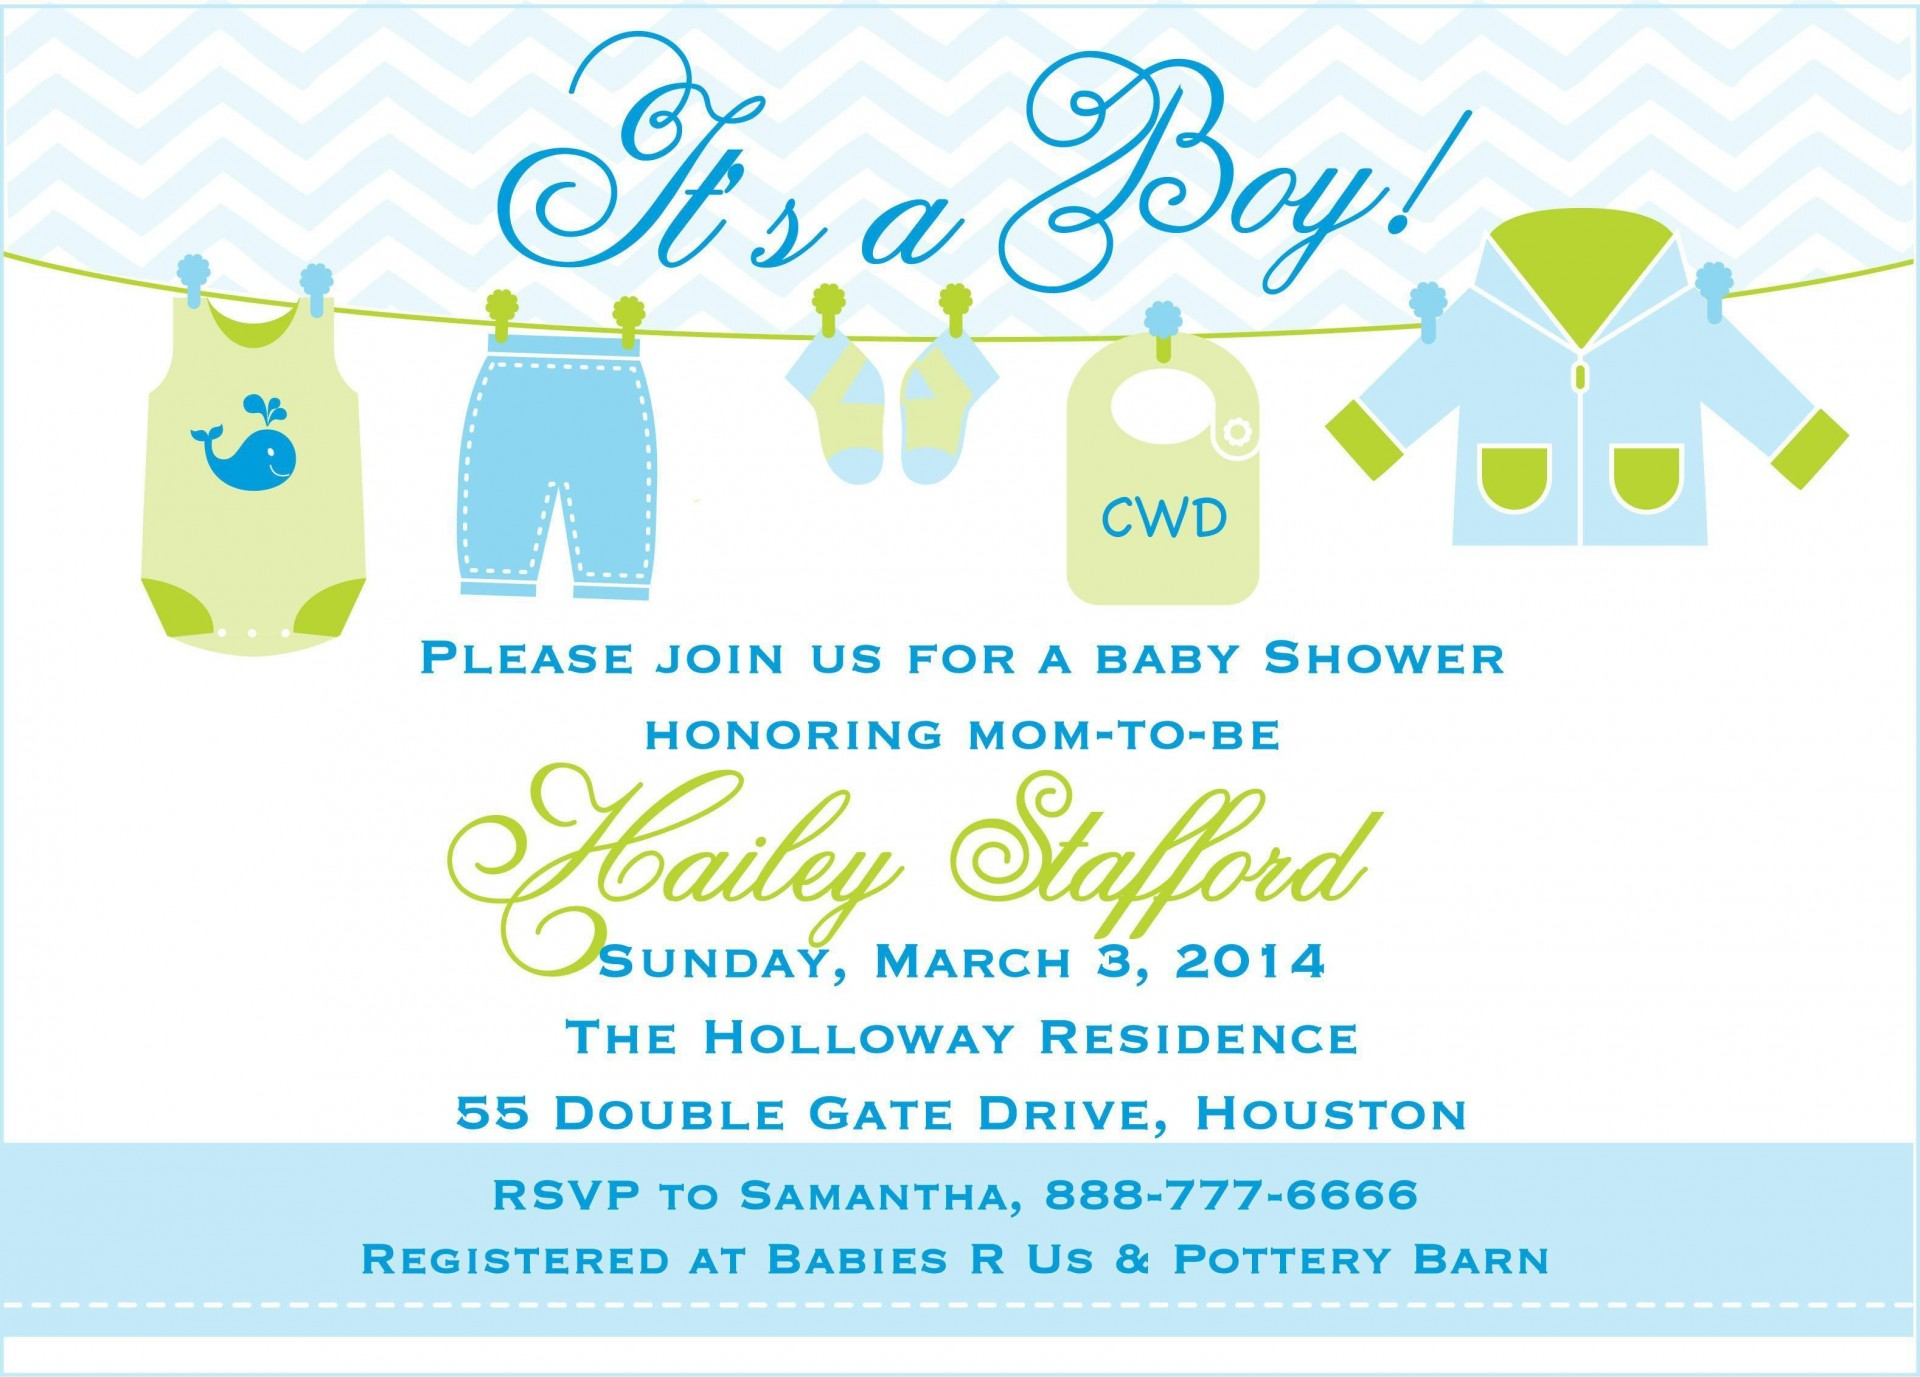 000 Surprising Free Baby Shower Invitation Template For Boy Highest Quality 1920